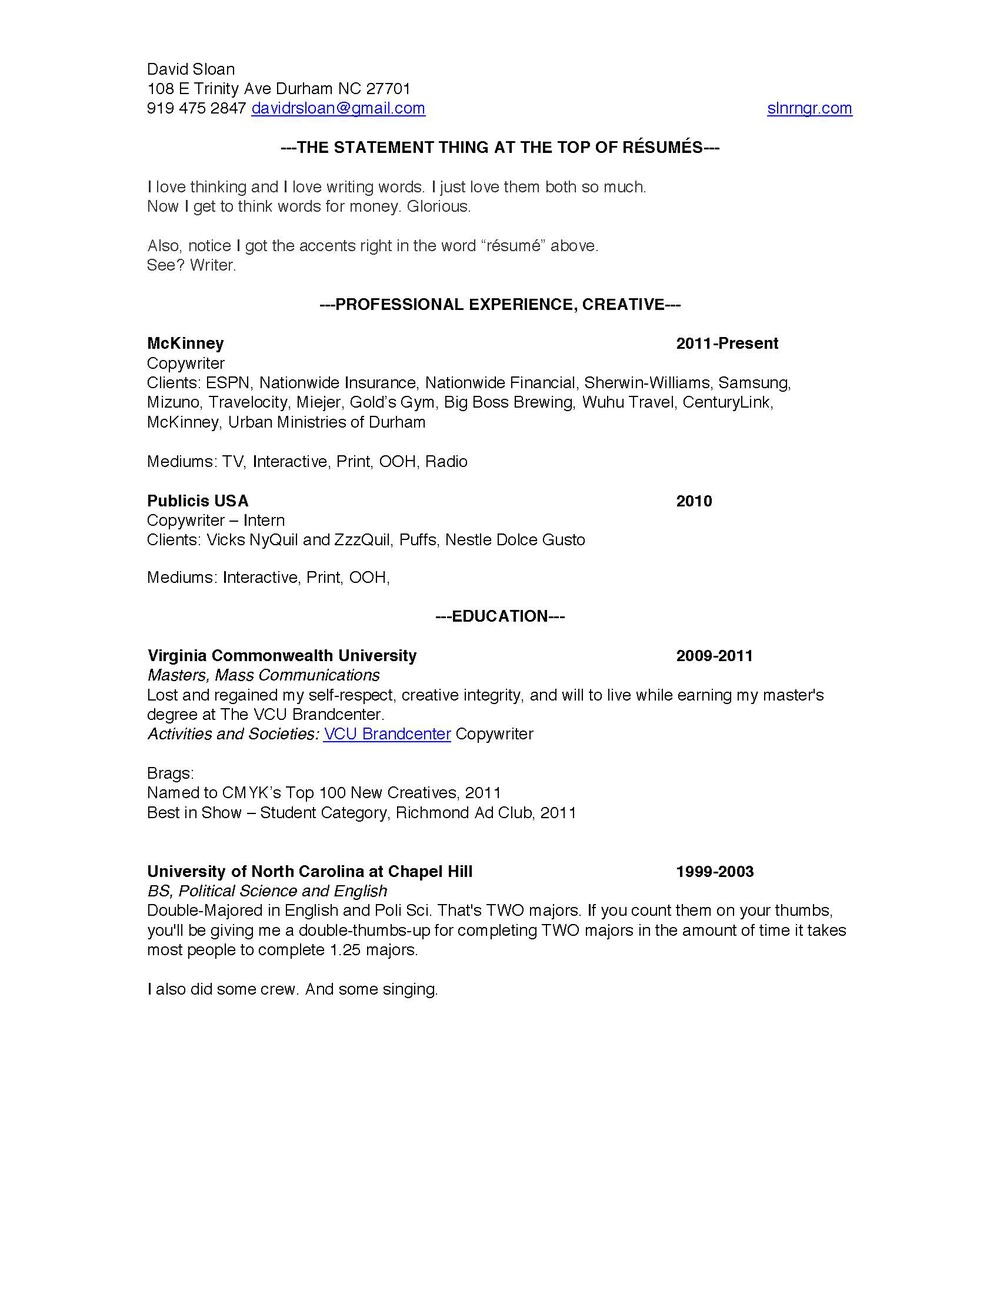 David Sloan Resume Feb 2014_Page_1.jpg